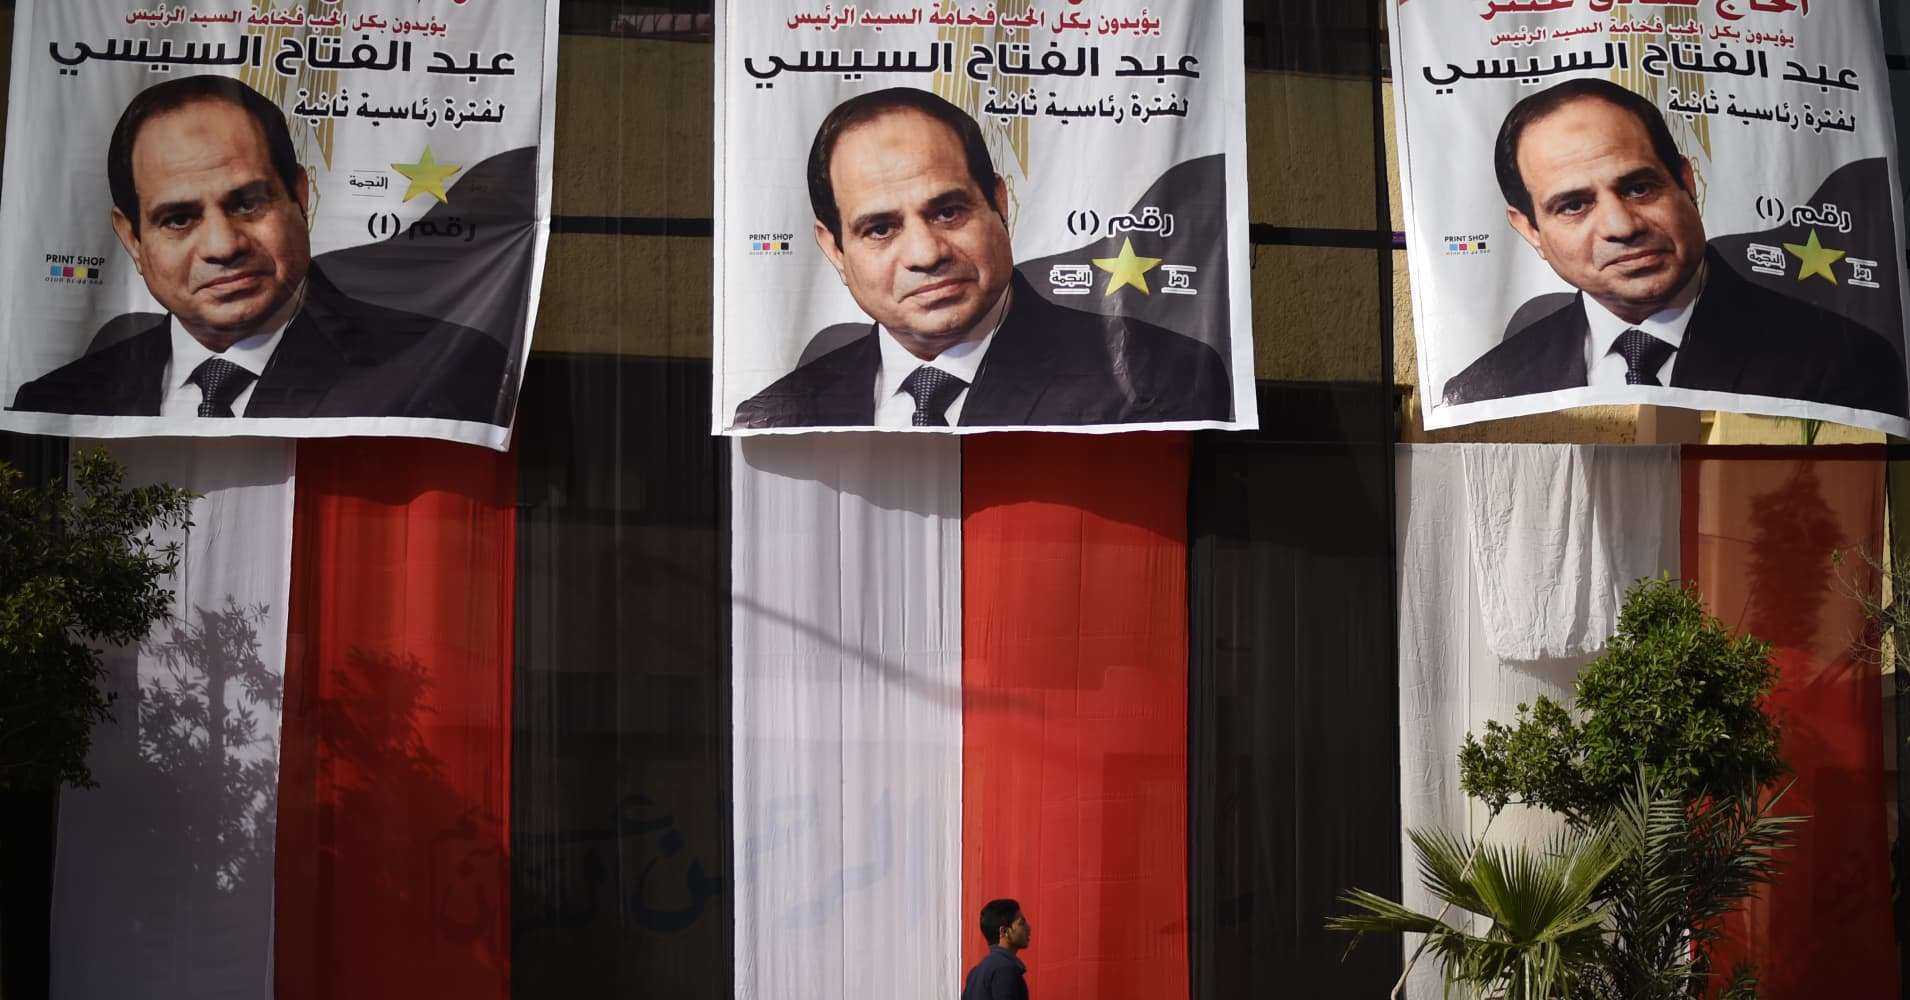 Egypt's President Sisi pushes toward term extensions in constitution